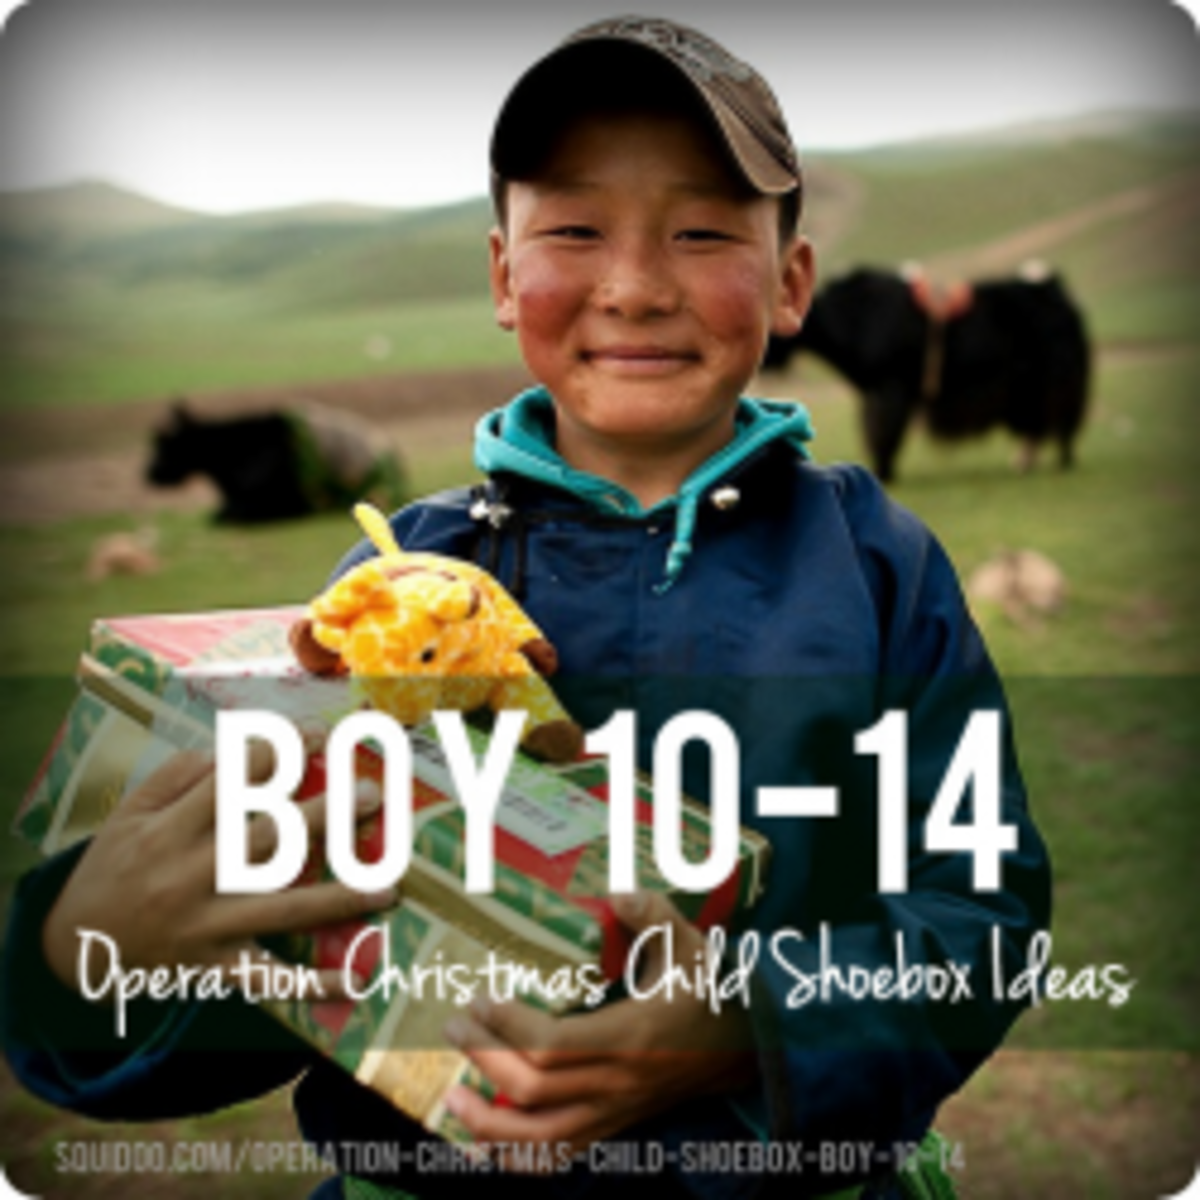 Operation Christmas Child: Life-Changing Shoebox Ideas for a 10-14 Boy